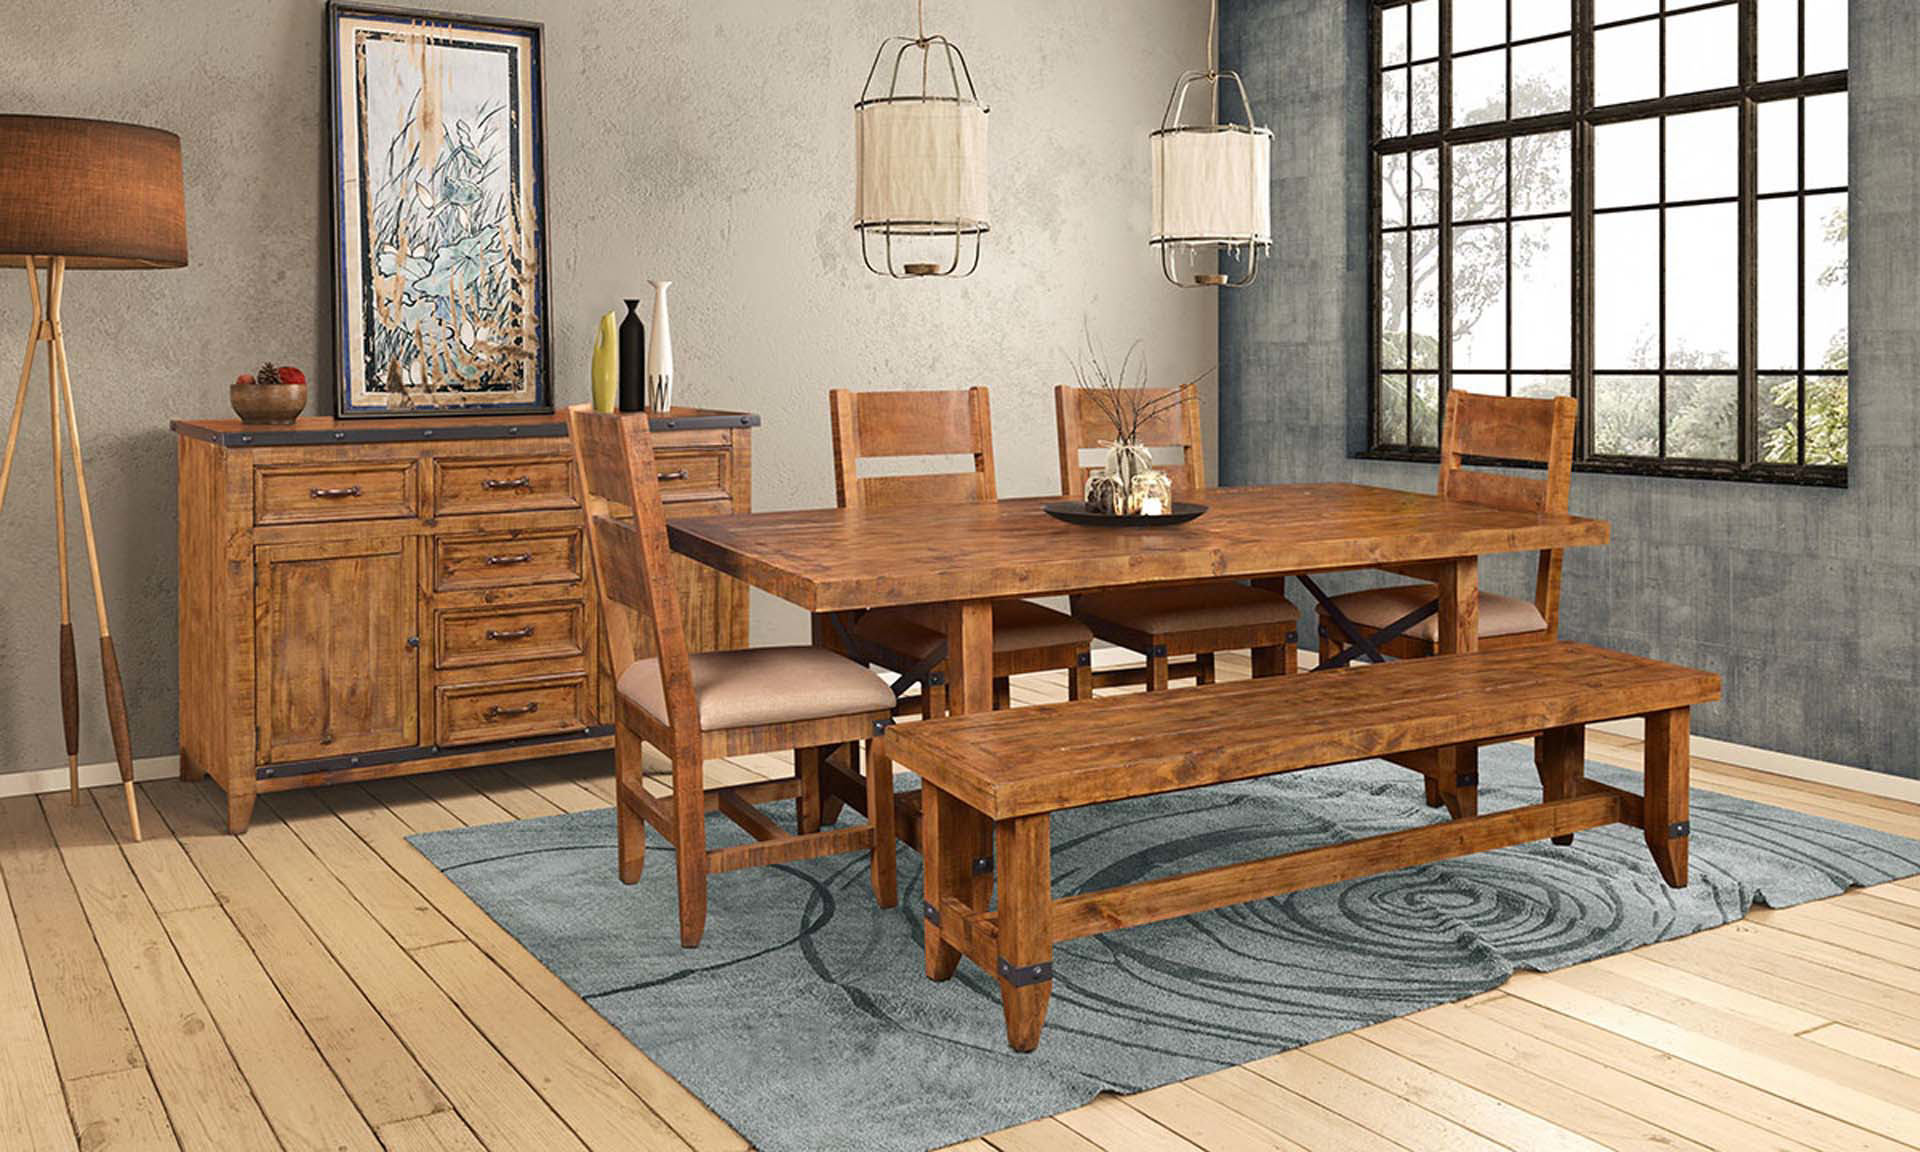 Horizon Home San Miguel 6-Piece Solid Pine Dining Set with 84-inch Trestle Table, Bench and 4 Cushioned Chairs in Nutmeg Brown Finish